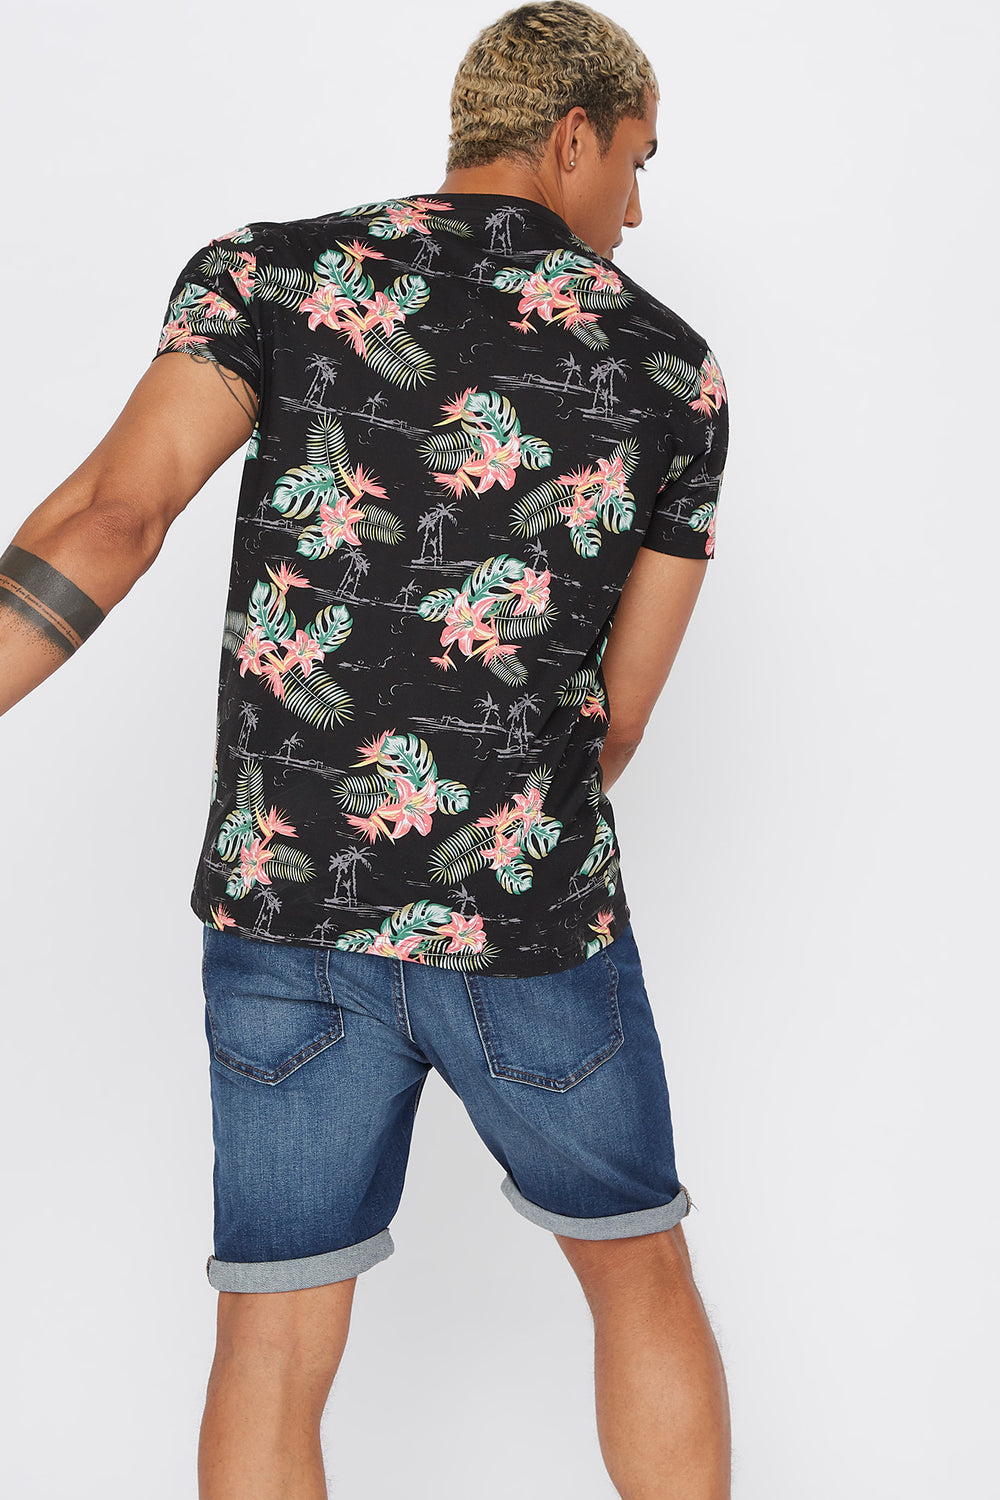 Tropical Crew Neck T-Shirt Black